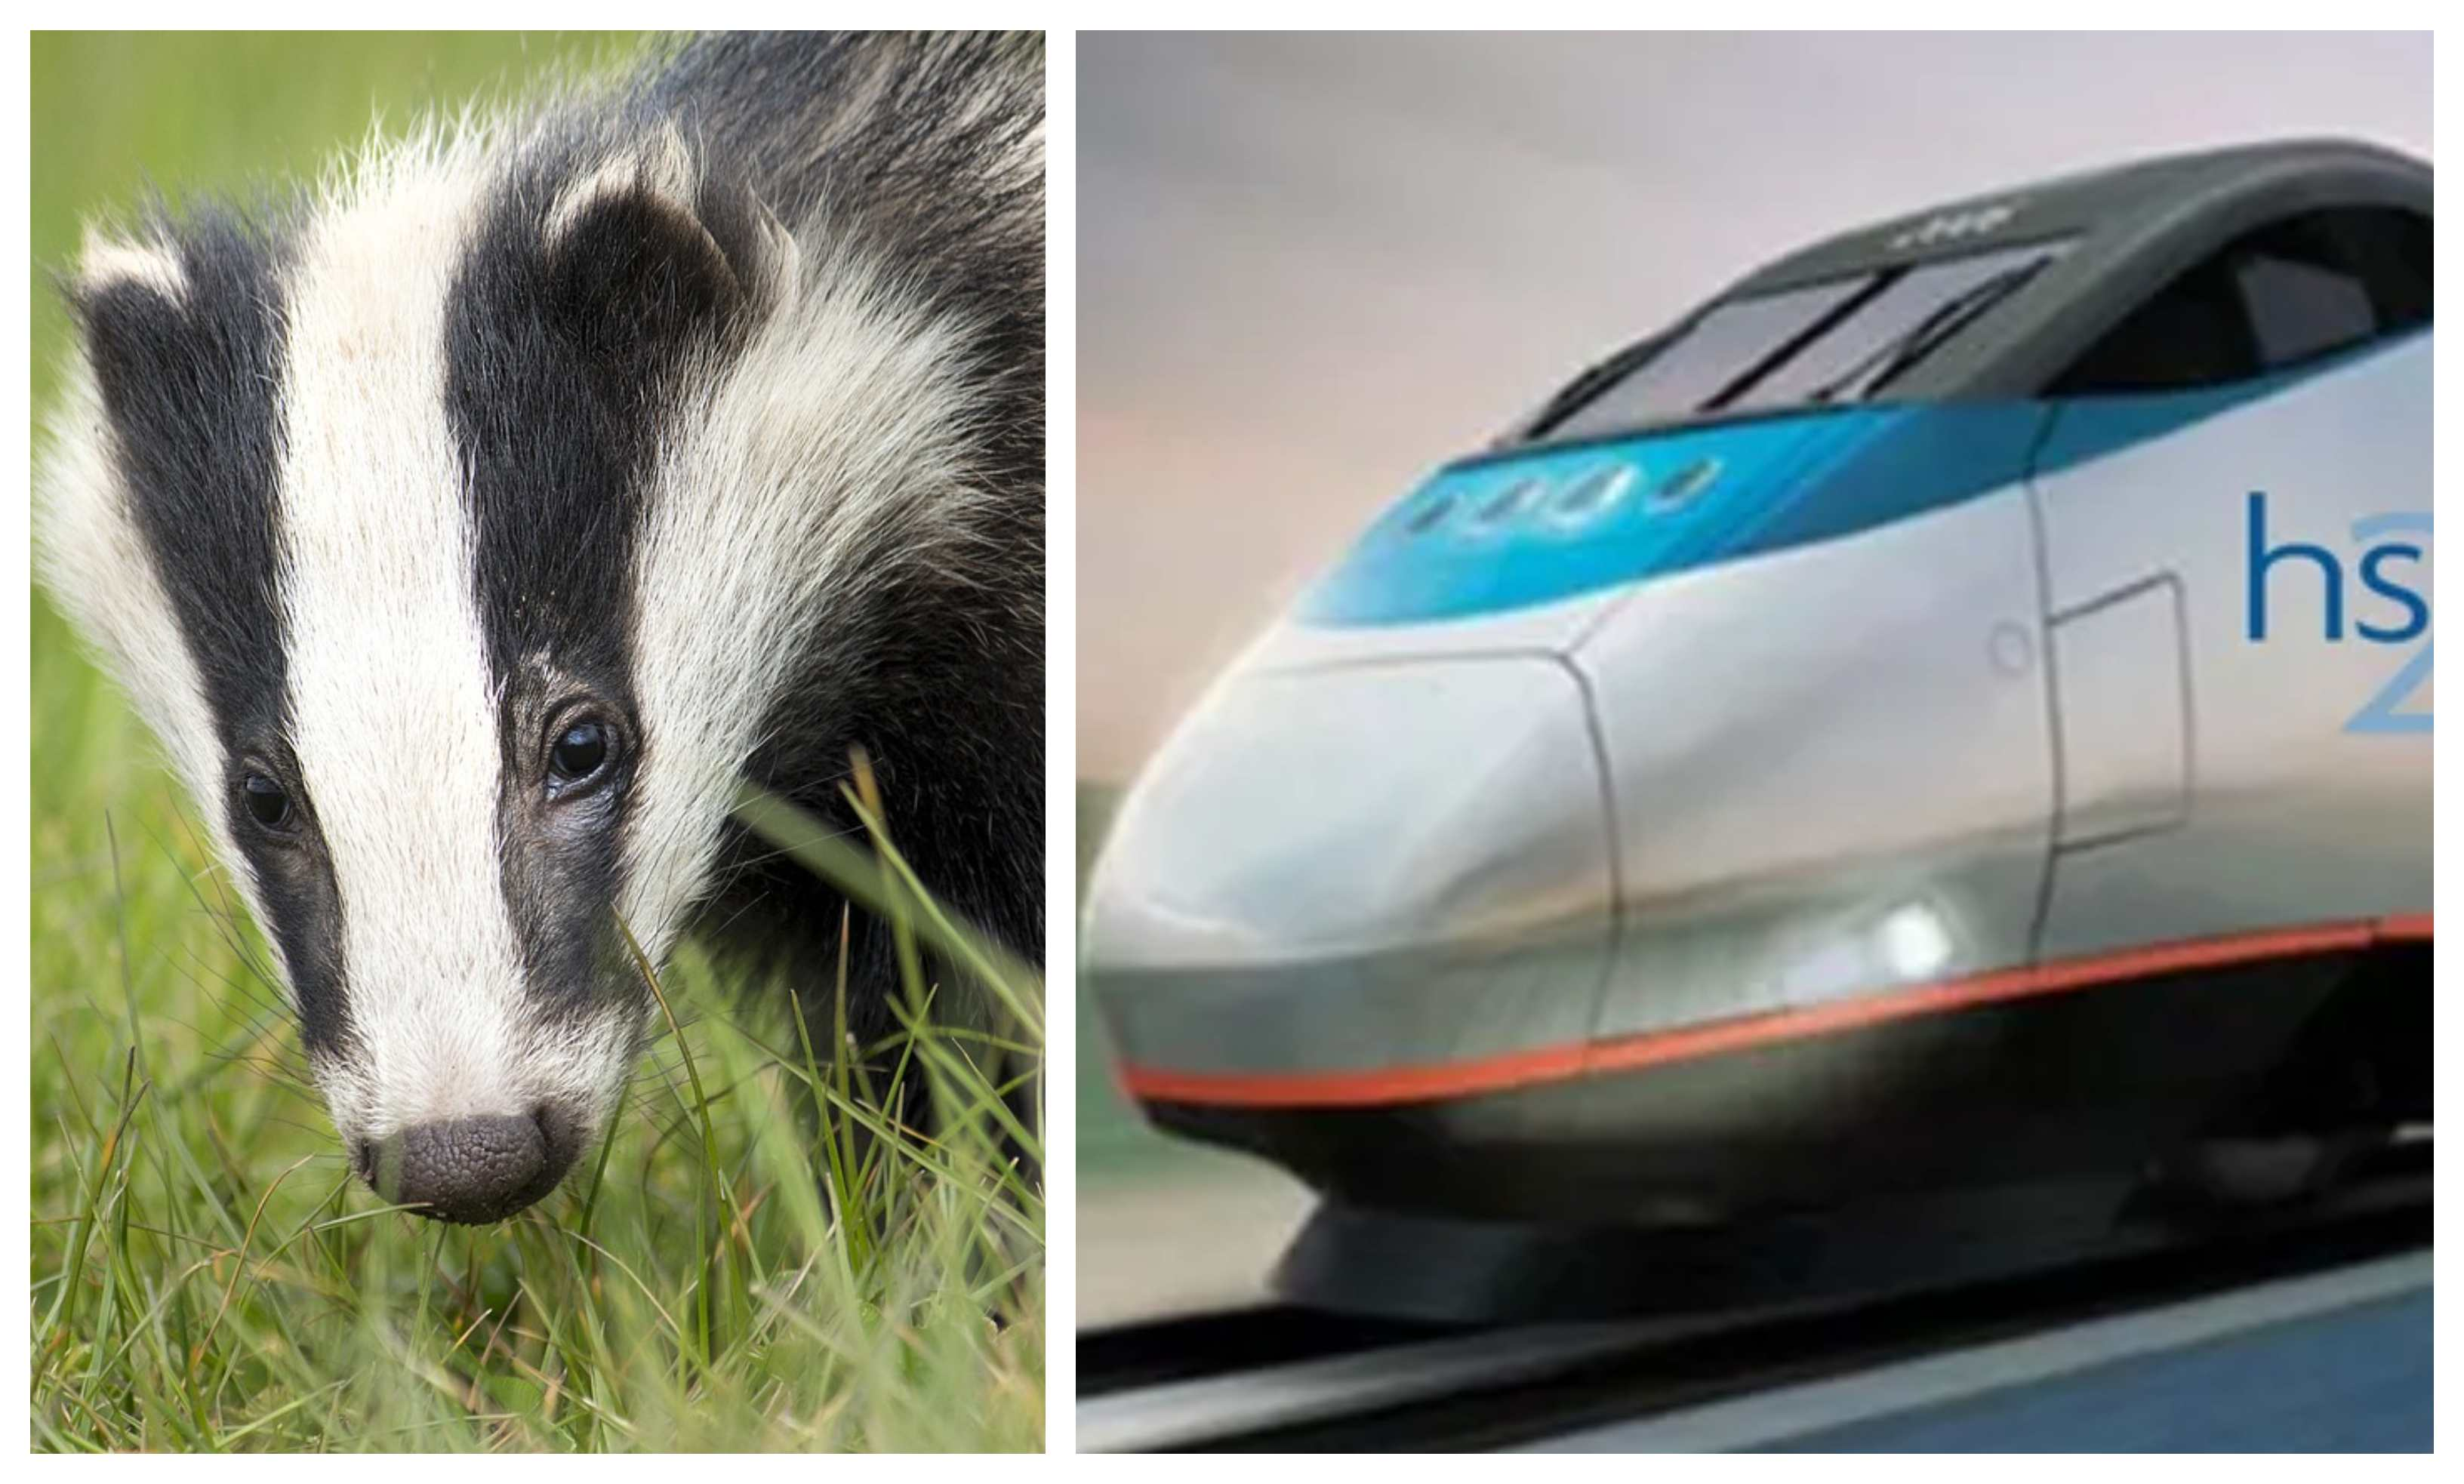 HS2 and a badger